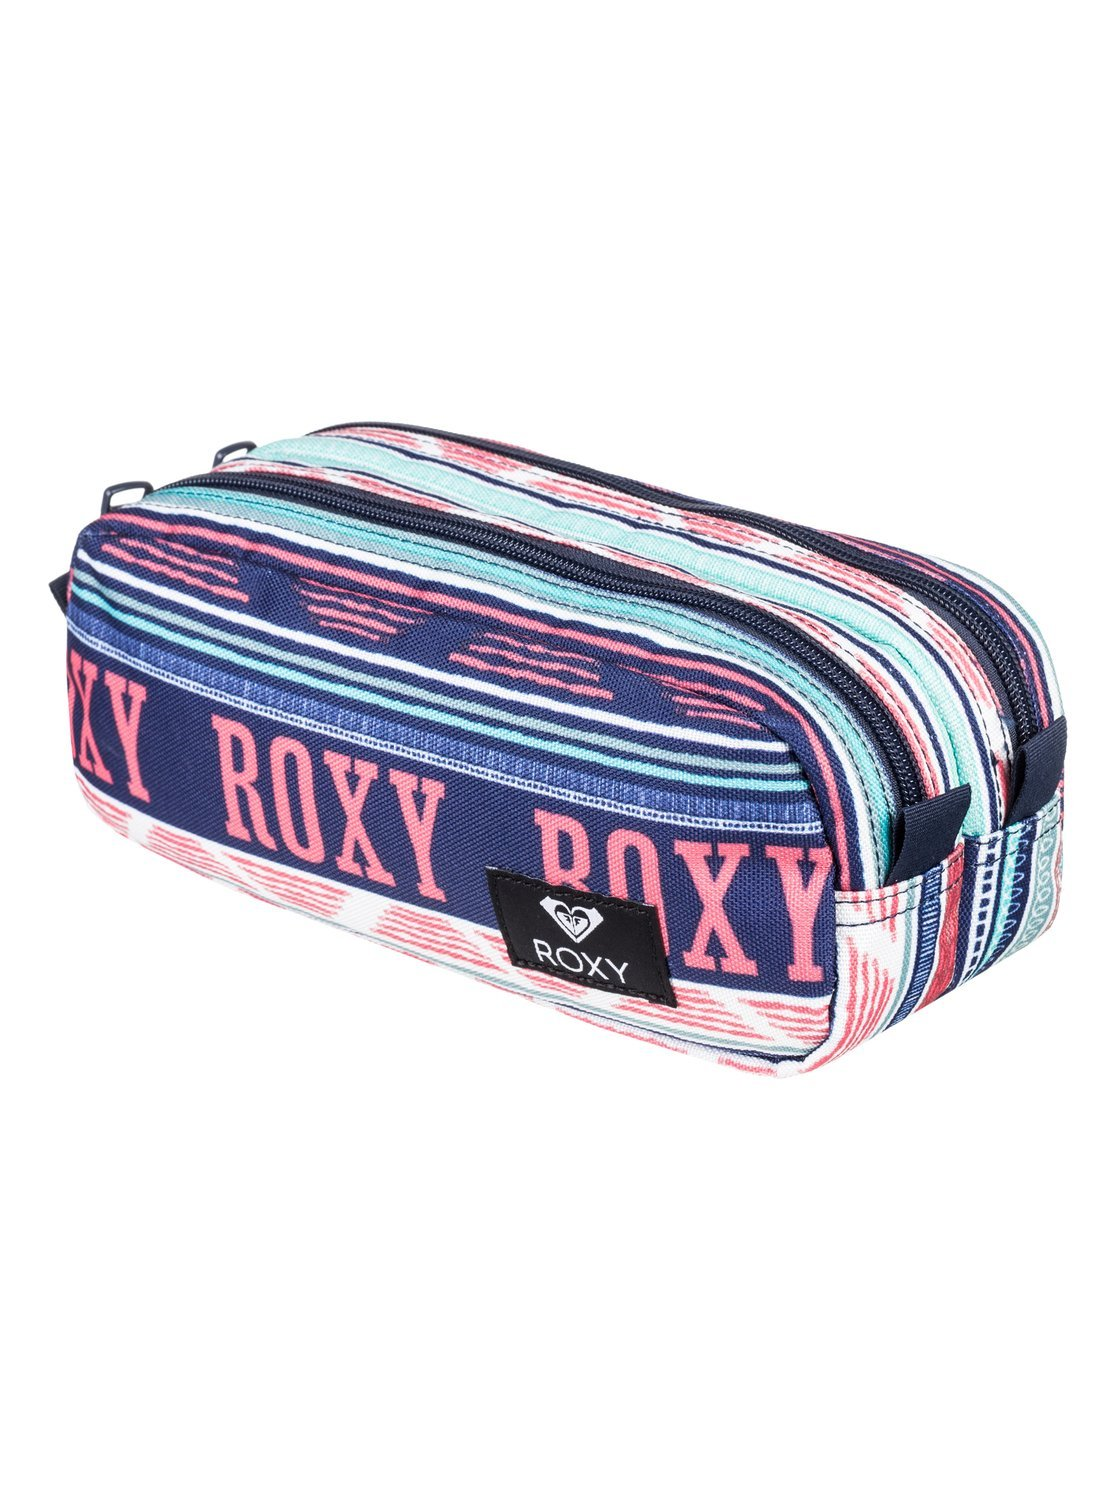 Amazon.com | Roxy Da Rock Pencil Case - Bright White AX ...